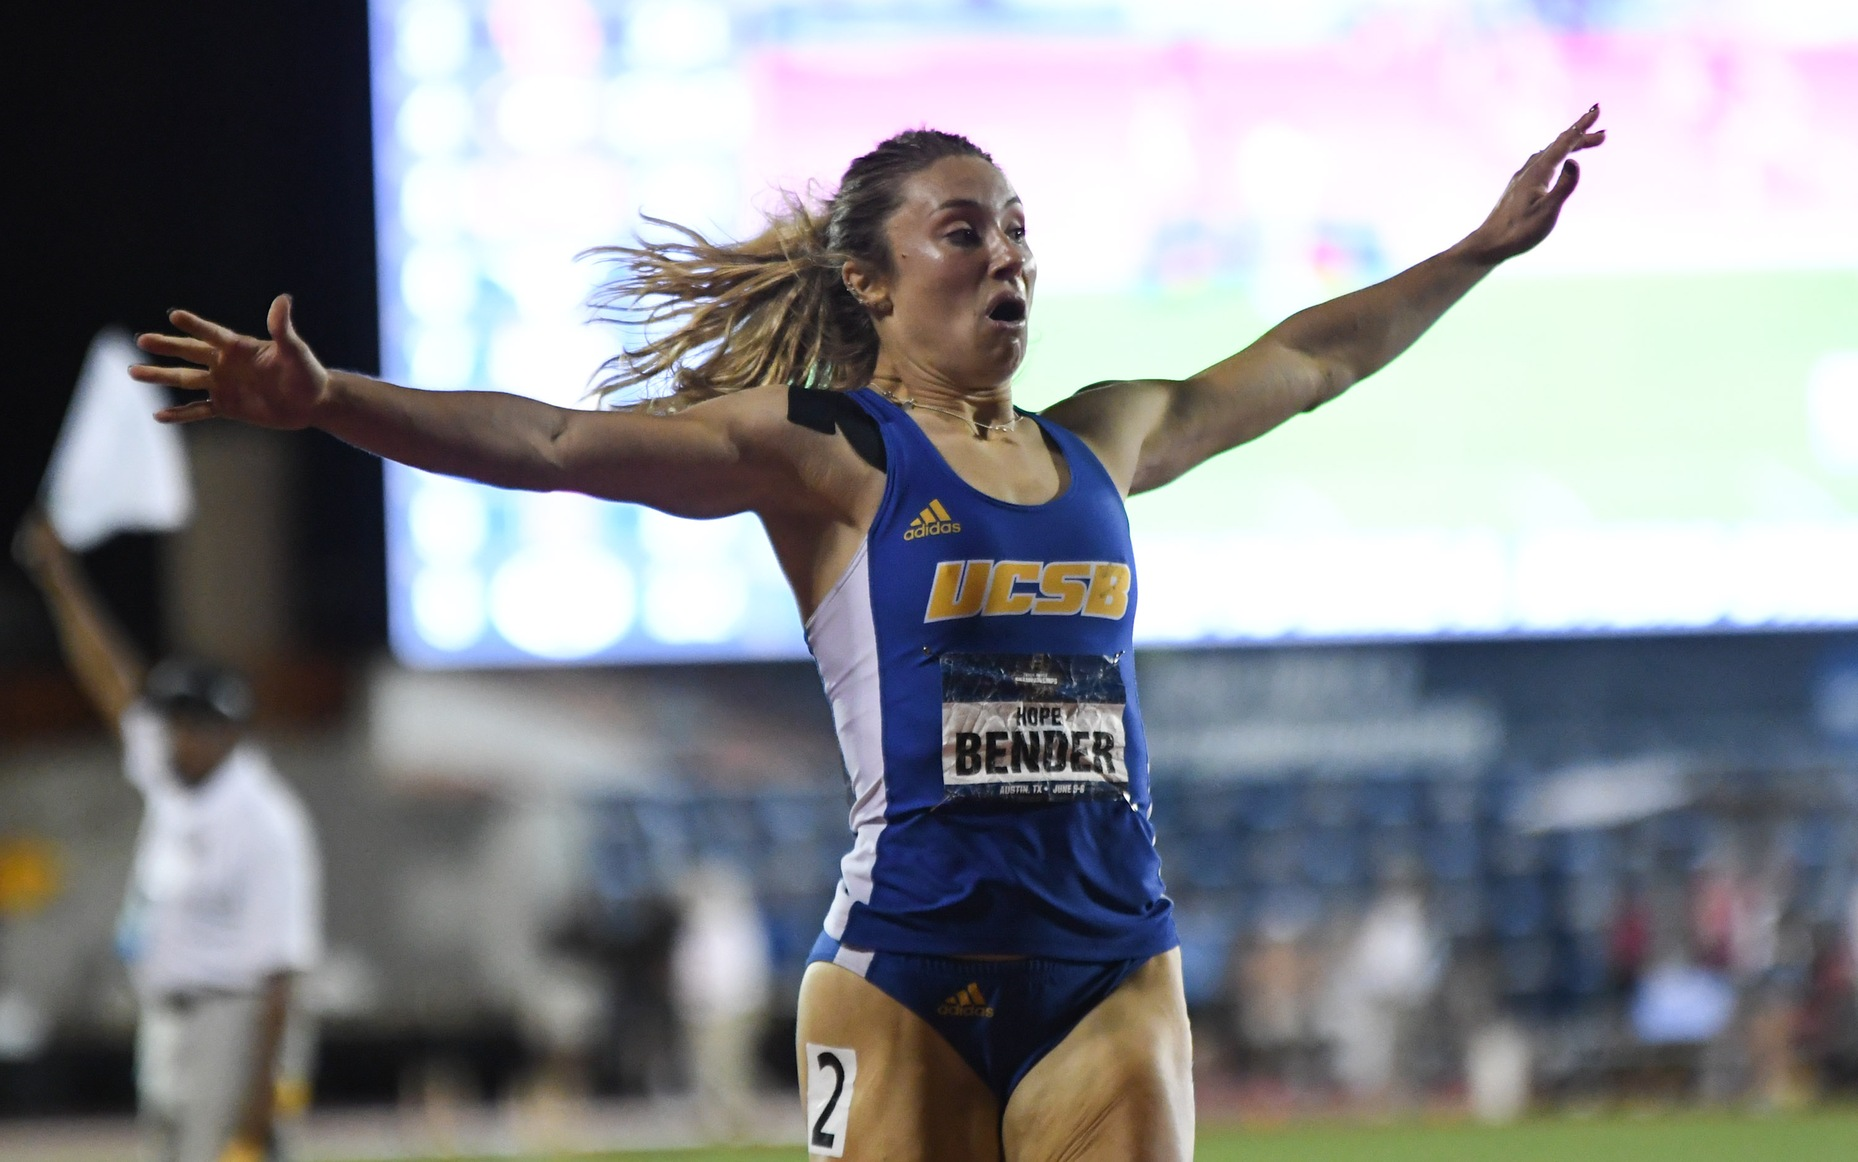 Hope Bender Sets School Record in 200m at NCAA Championships